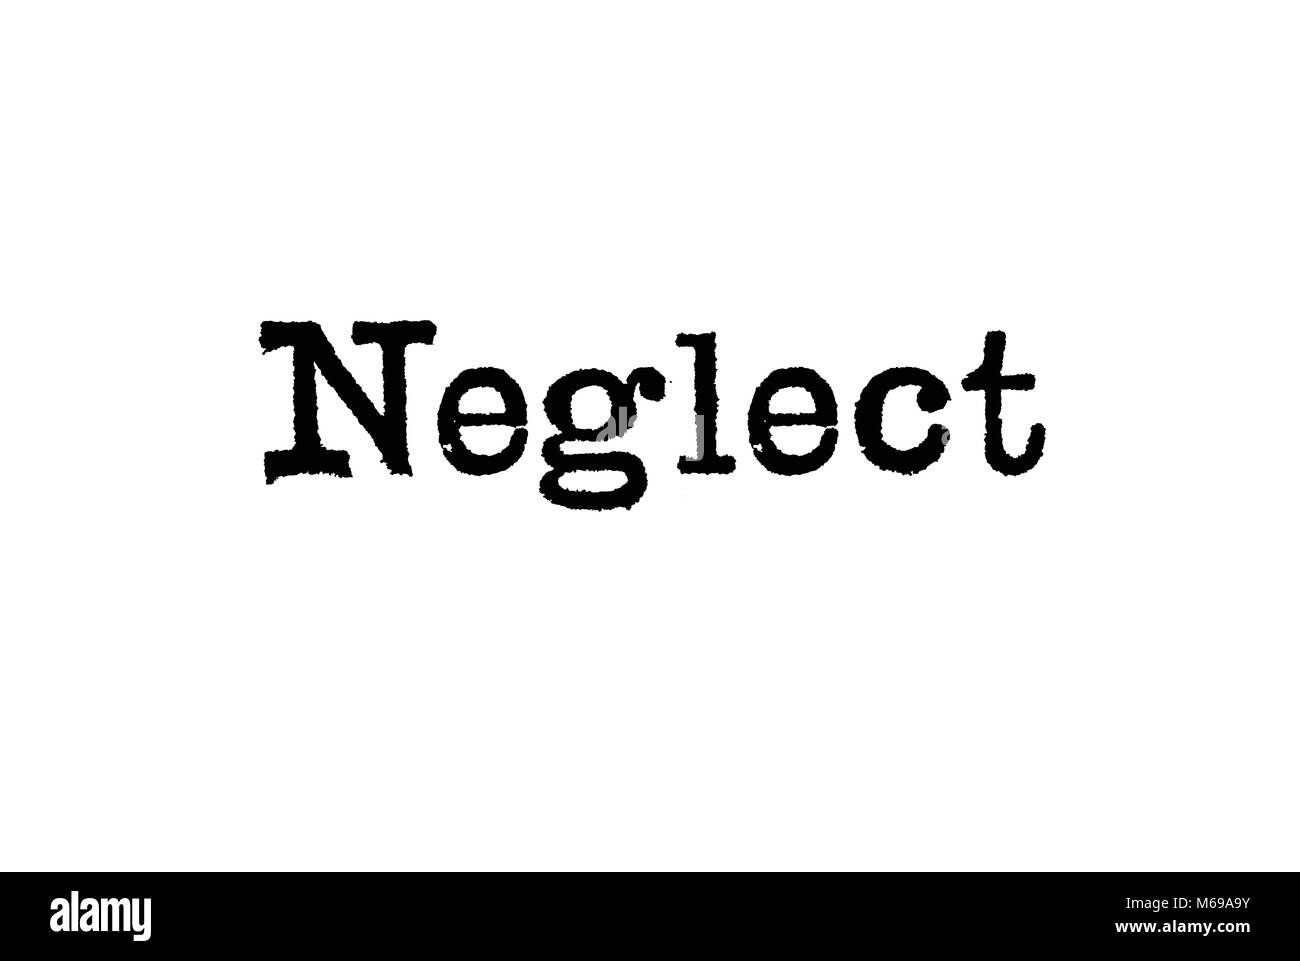 The word Neglect from a typewriter on a white background - Stock Image